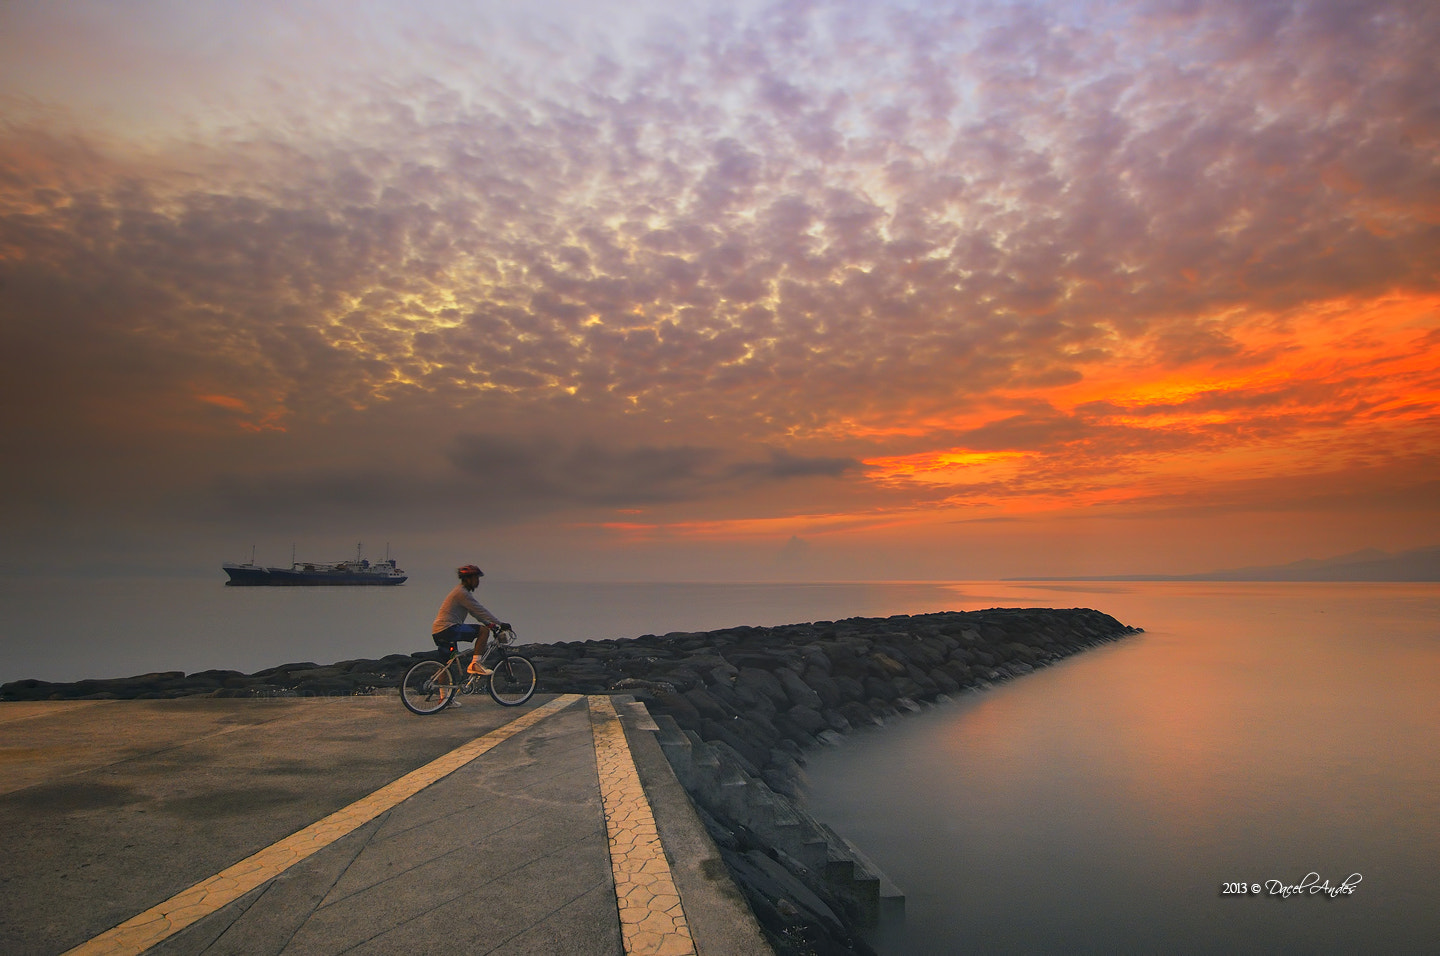 Photograph Unusual Morning by Dacel Andes on 500px